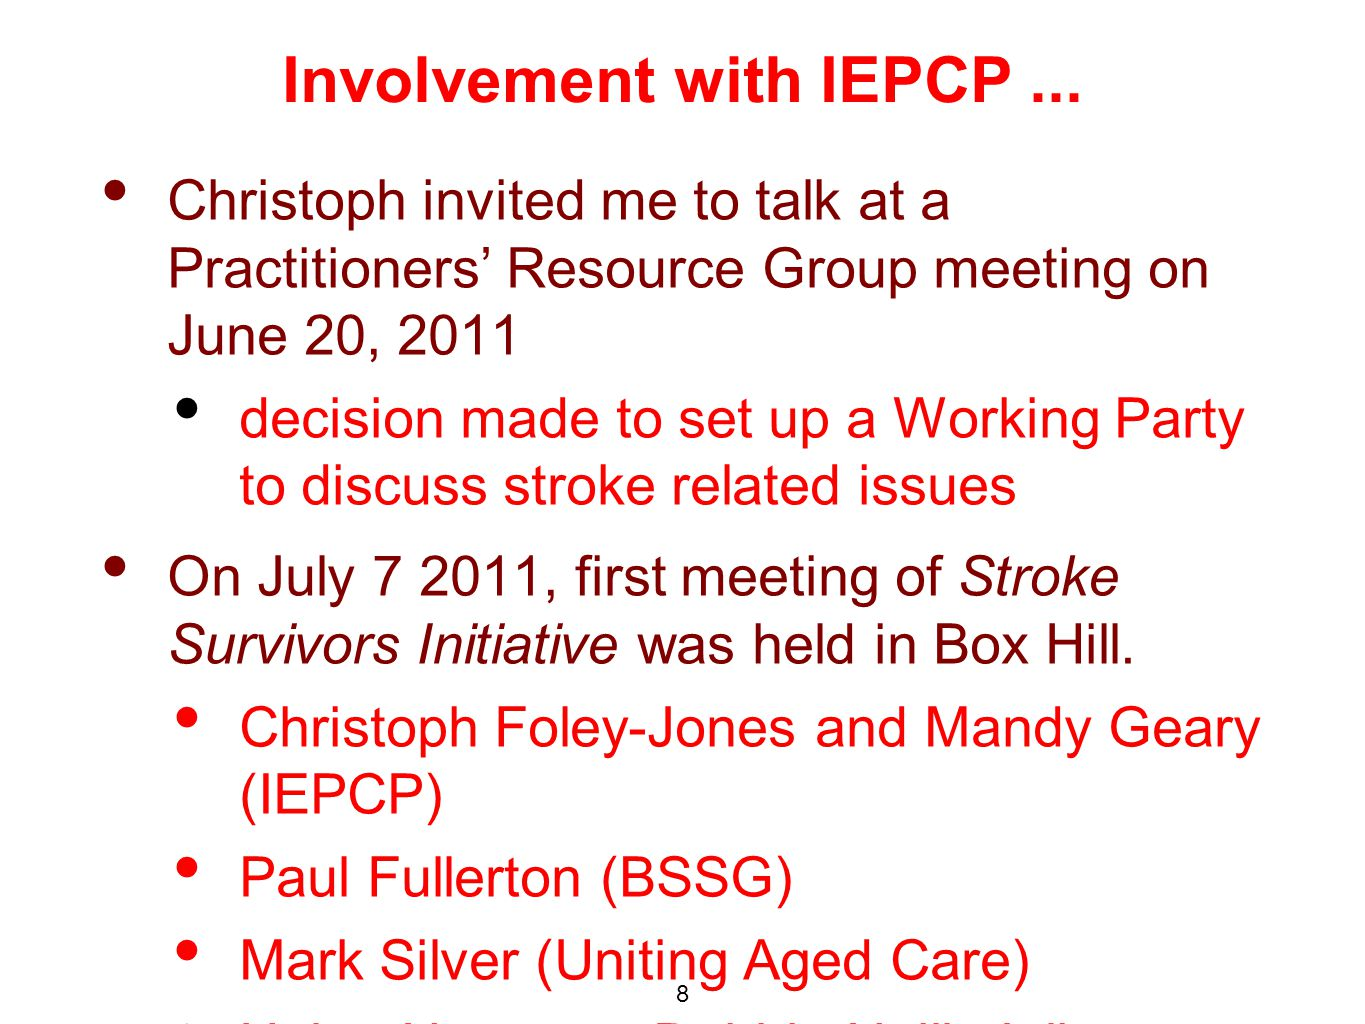 Christoph invited me to talk at a Practitioners' Resource Group meeting on June 20, 2011 decision made to set up a Working Party to discuss stroke related issues On July , first meeting of Stroke Survivors Initiative was held in Box Hill.